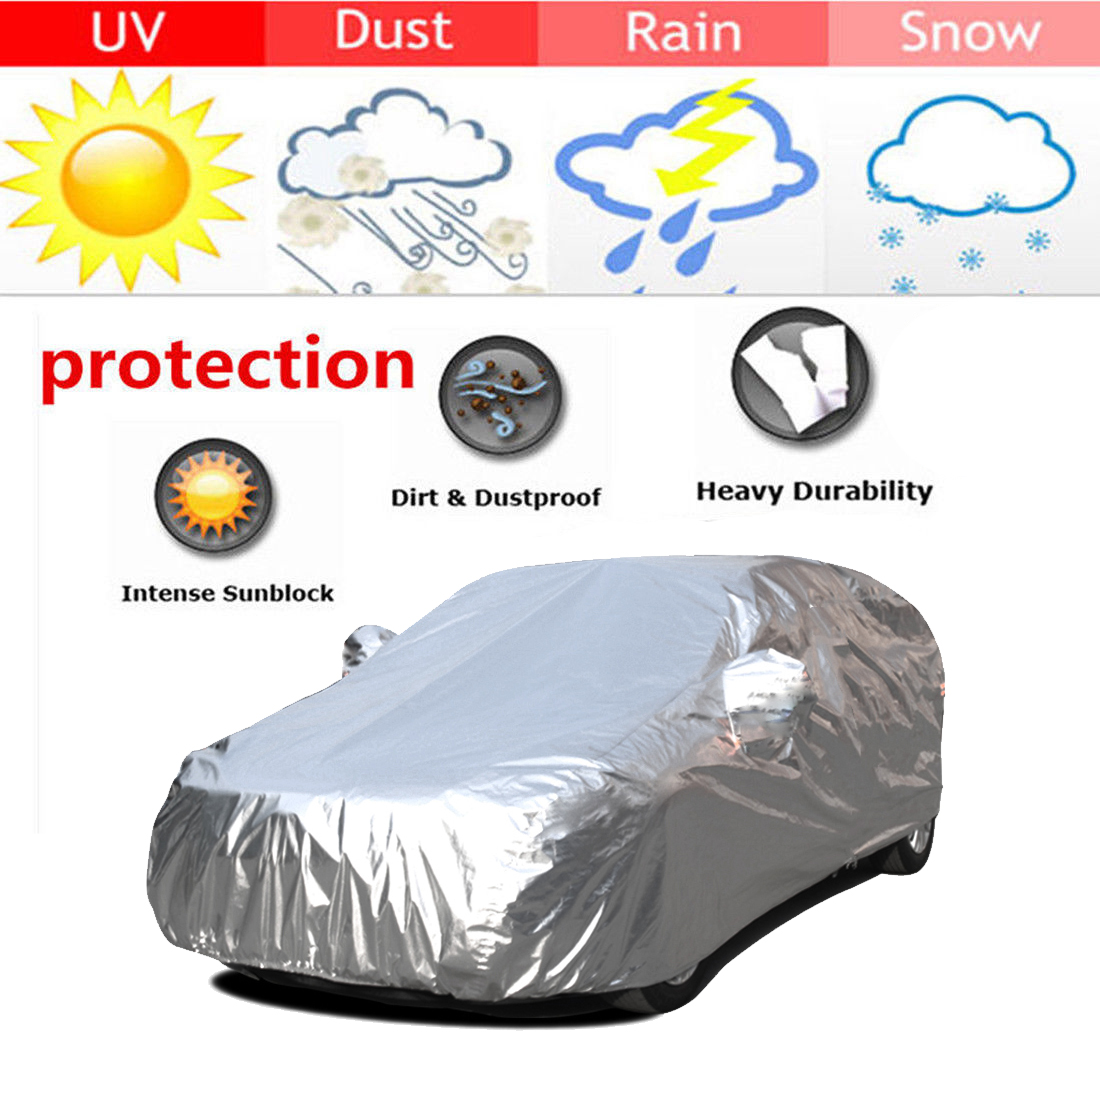 voiture b che housse de protection anti uv couvre tanche car cover taille l ebay. Black Bedroom Furniture Sets. Home Design Ideas